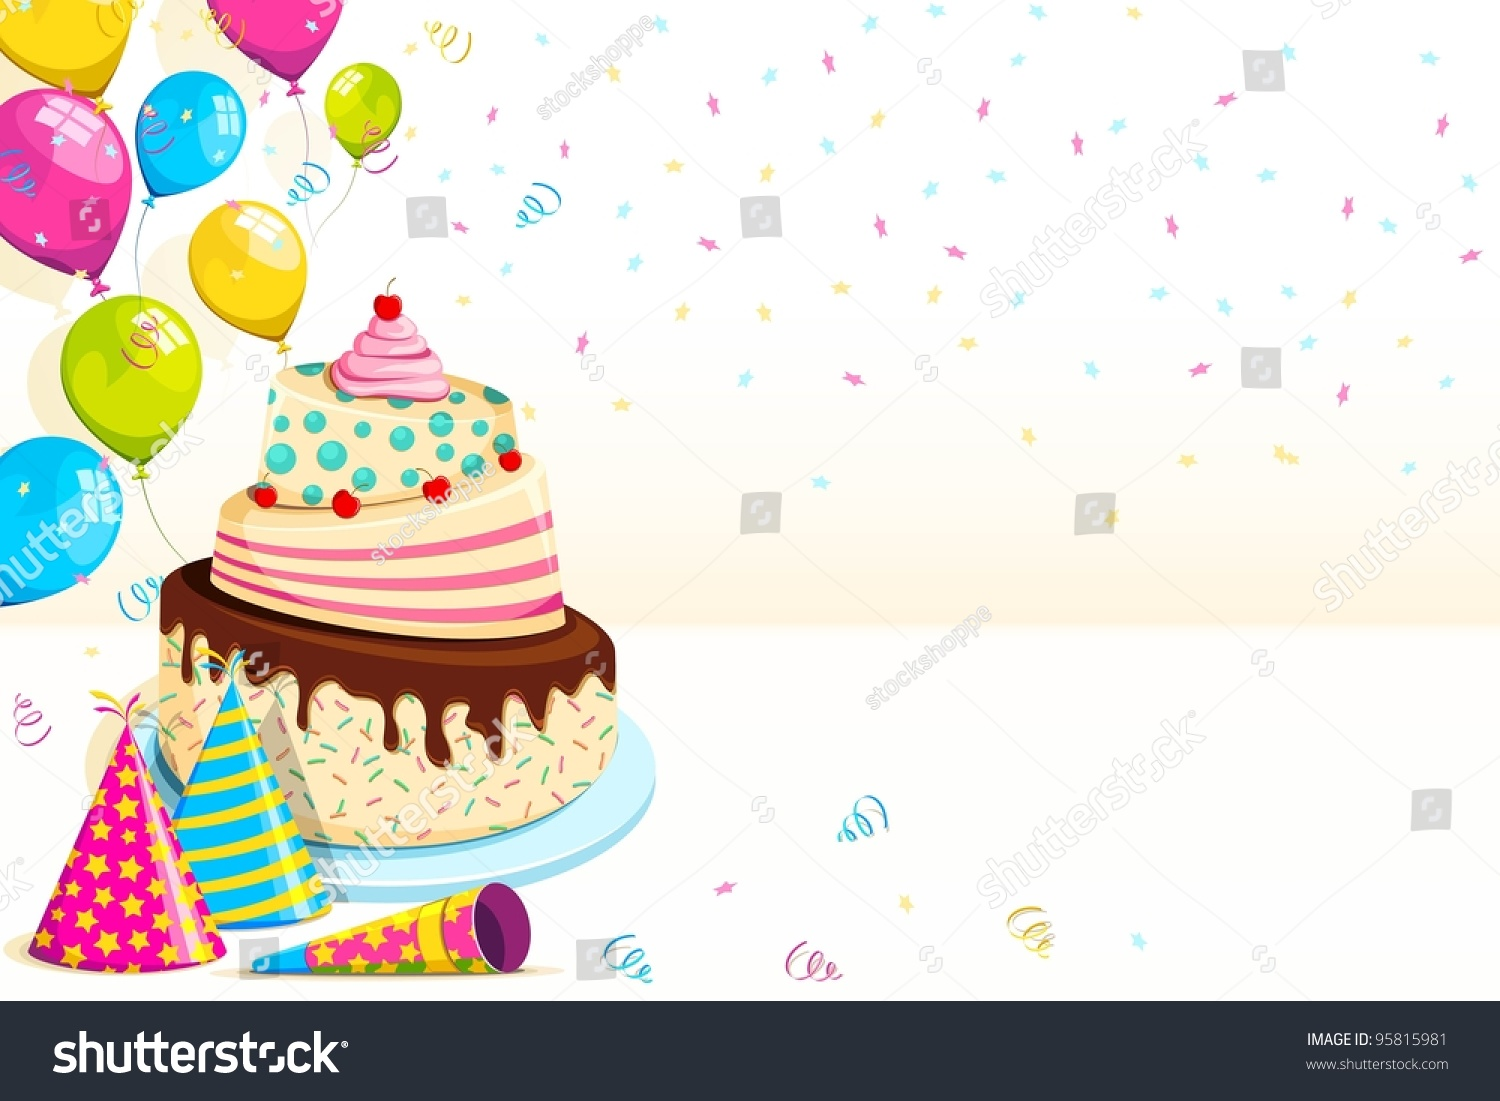 ... Birthday Background With Cake And Balloon - 95815981 : Shutterstock